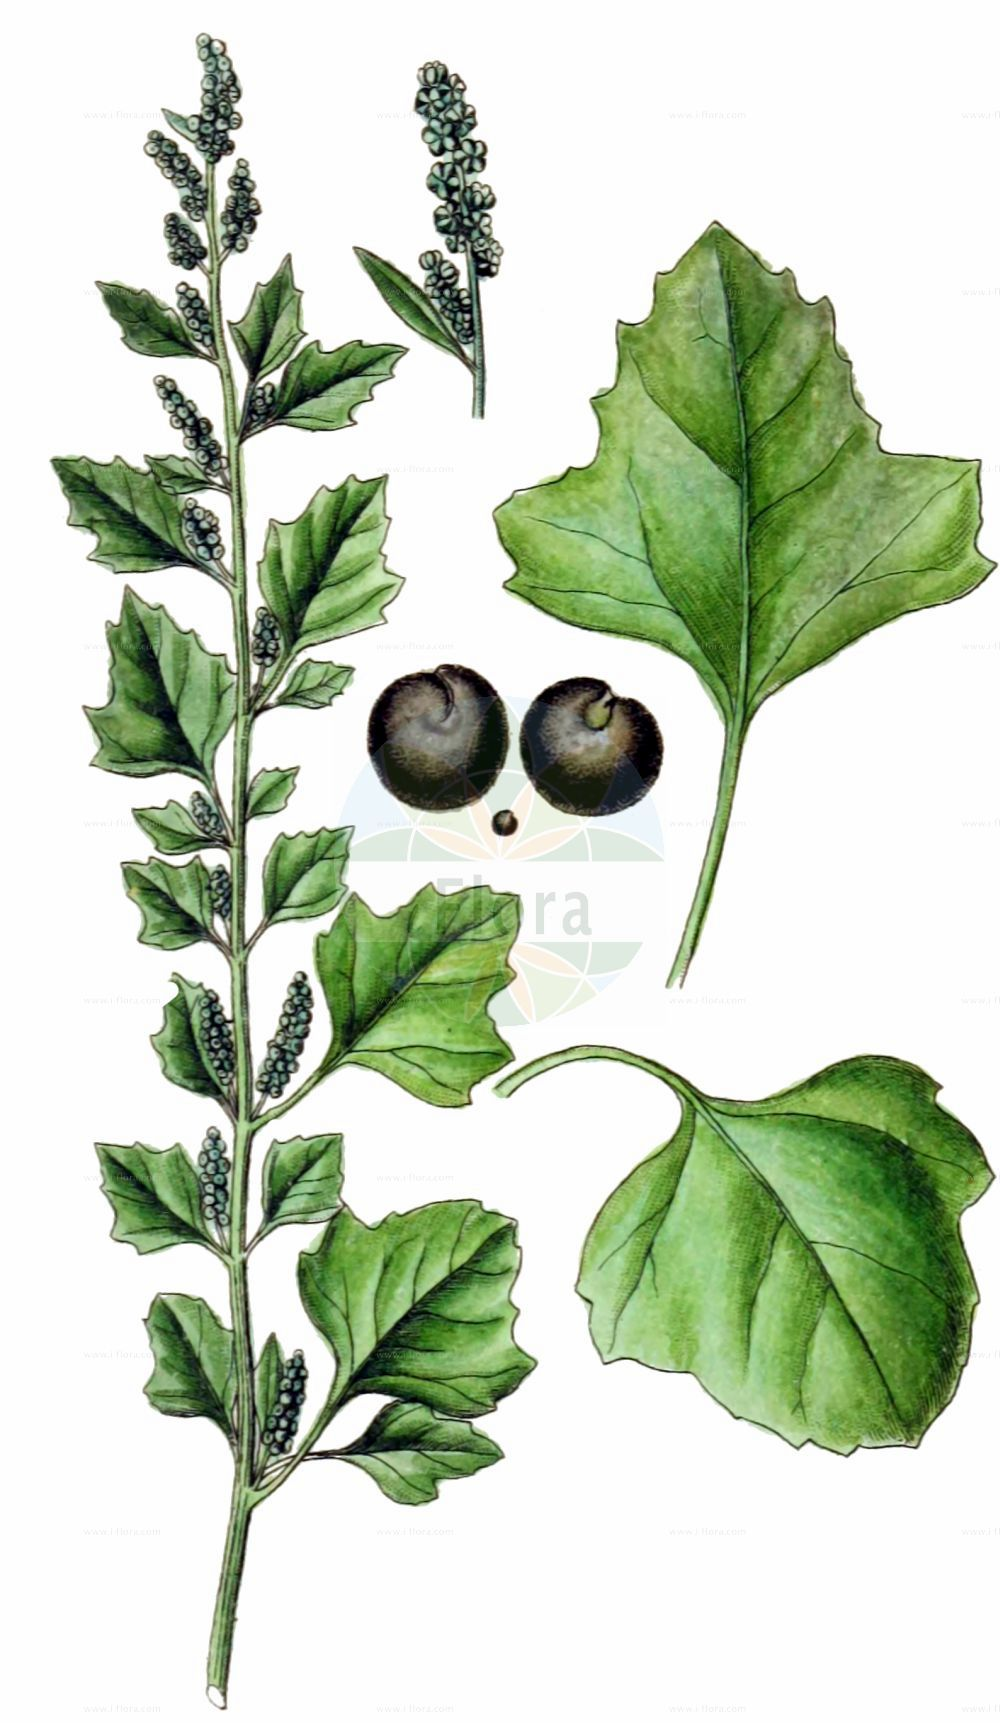 Historische Abbildung von Chenopodium opulifolium (Schneeballblaettriger Gaensefuss - Grey Goosefoot). Das Bild zeigt Blatt, Bluete, Frucht und Same. ---- Historical Drawing of Chenopodium opulifolium (Schneeballblaettriger Gaensefuss - Grey Goosefoot).The image is showing leaf, flower, fruit and seed.(Chenopodium opulifolium,Schneeballblaettriger Gaensefuss,Grey Goosefoot,Chenopodium opulifolium,Schneeballblaettriger Gaensefuss,Grey Goosefoot,Seaport Goosefoot,Round-leaved Goosefoot,Chenopodium,Gaensefuss,Goosefoot,Amaranthaceae,Fuchsschwanzgewaechse,Pigweed family,Blatt,Bluete,Frucht,Same,leaf,flower,fruit,seed,Sturm (1796f))